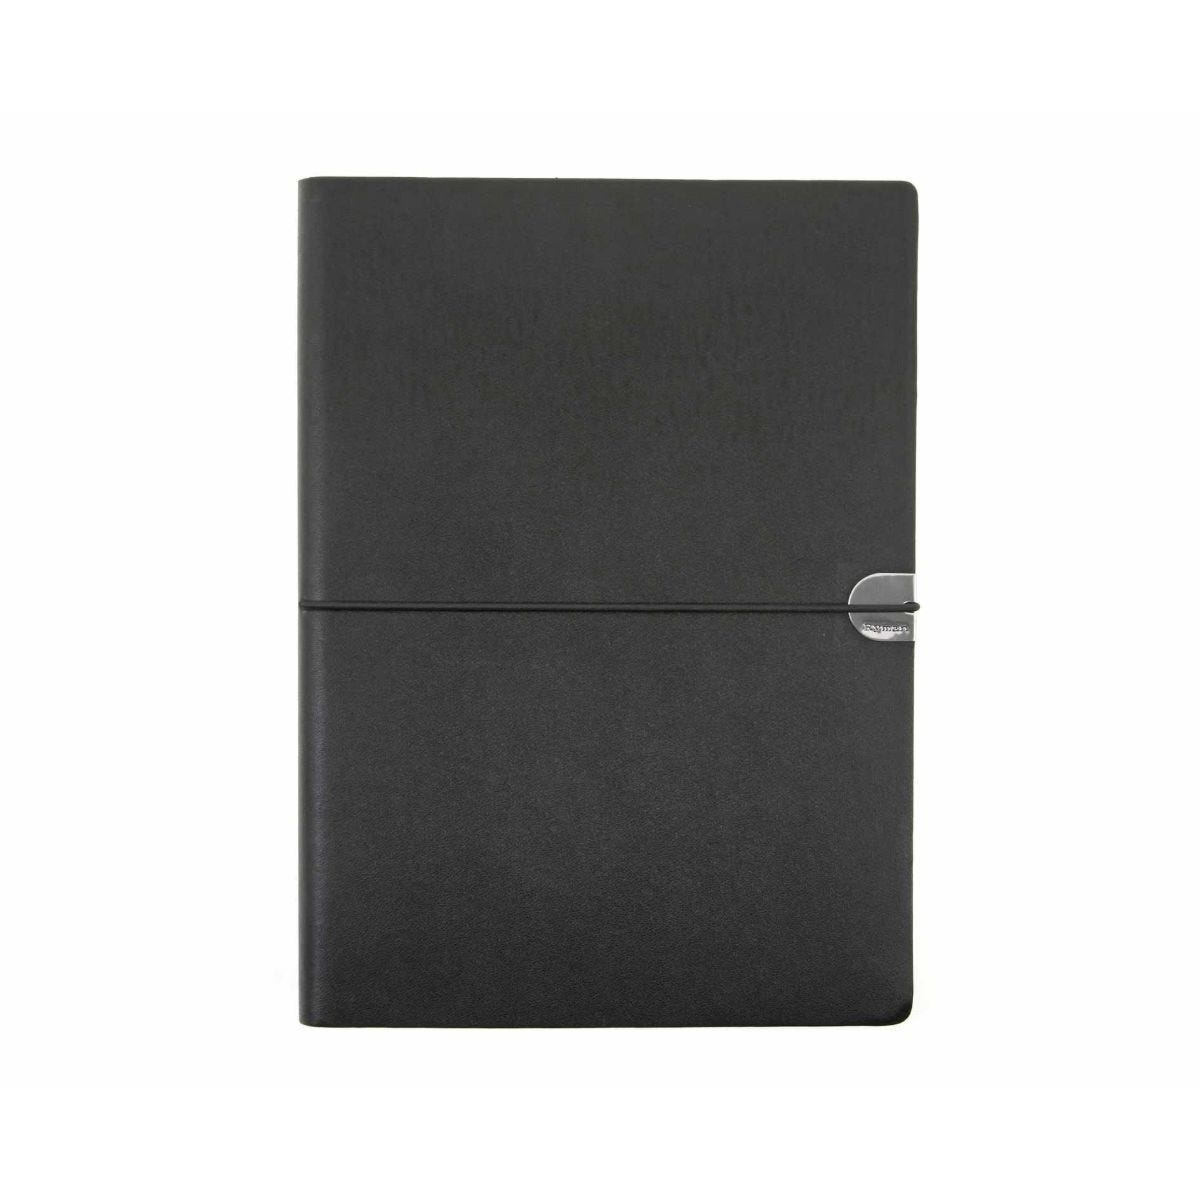 Ryman Soft Cover Sketch Book A5 120gsm 80 Sheets 160 Pages